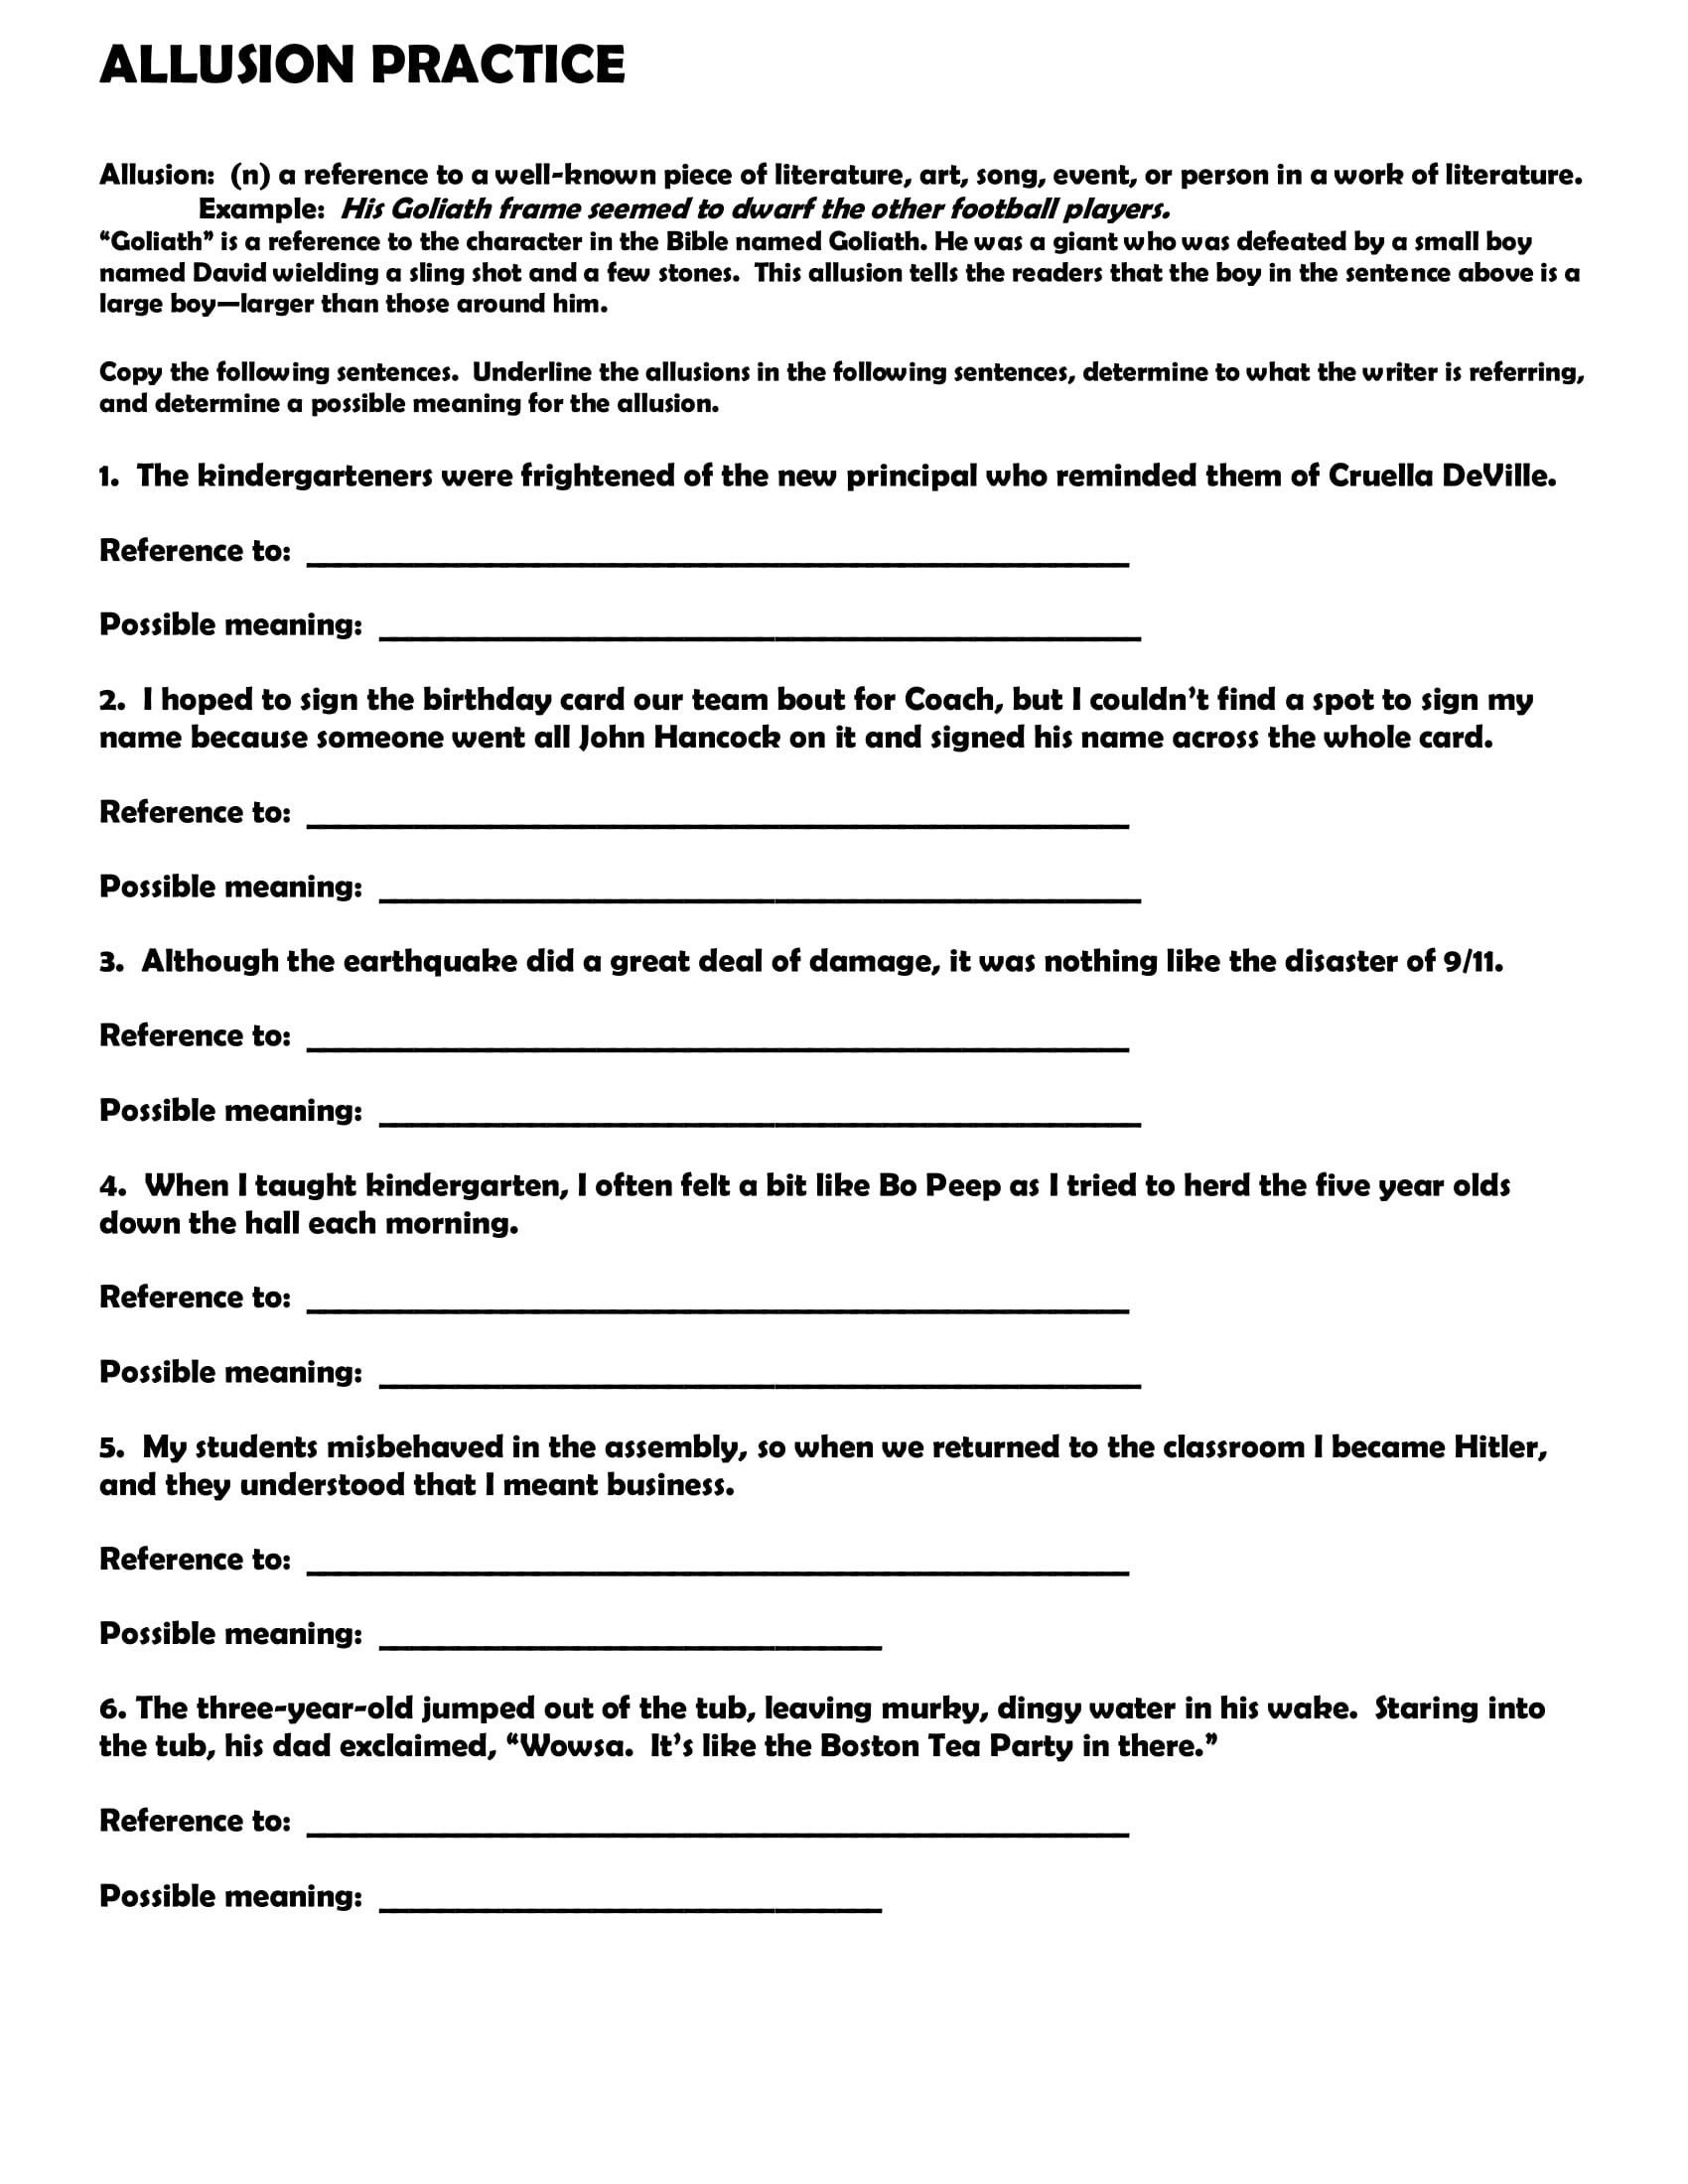 Allusion Worksheet For Middle School In